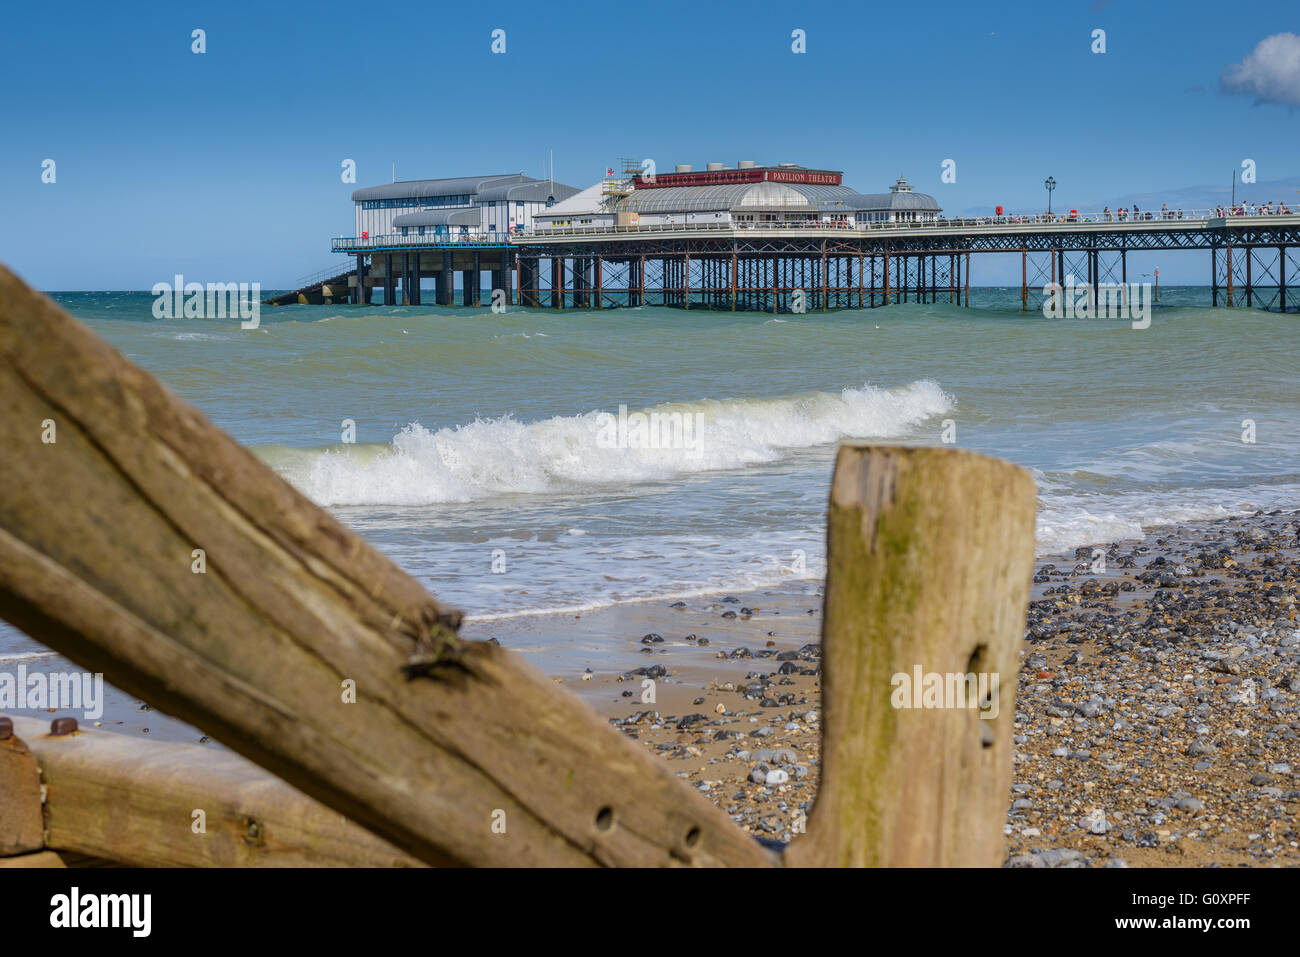 A view of Cromer Pier expands out in to the sea from the North N0rfolk coast - Stock Image